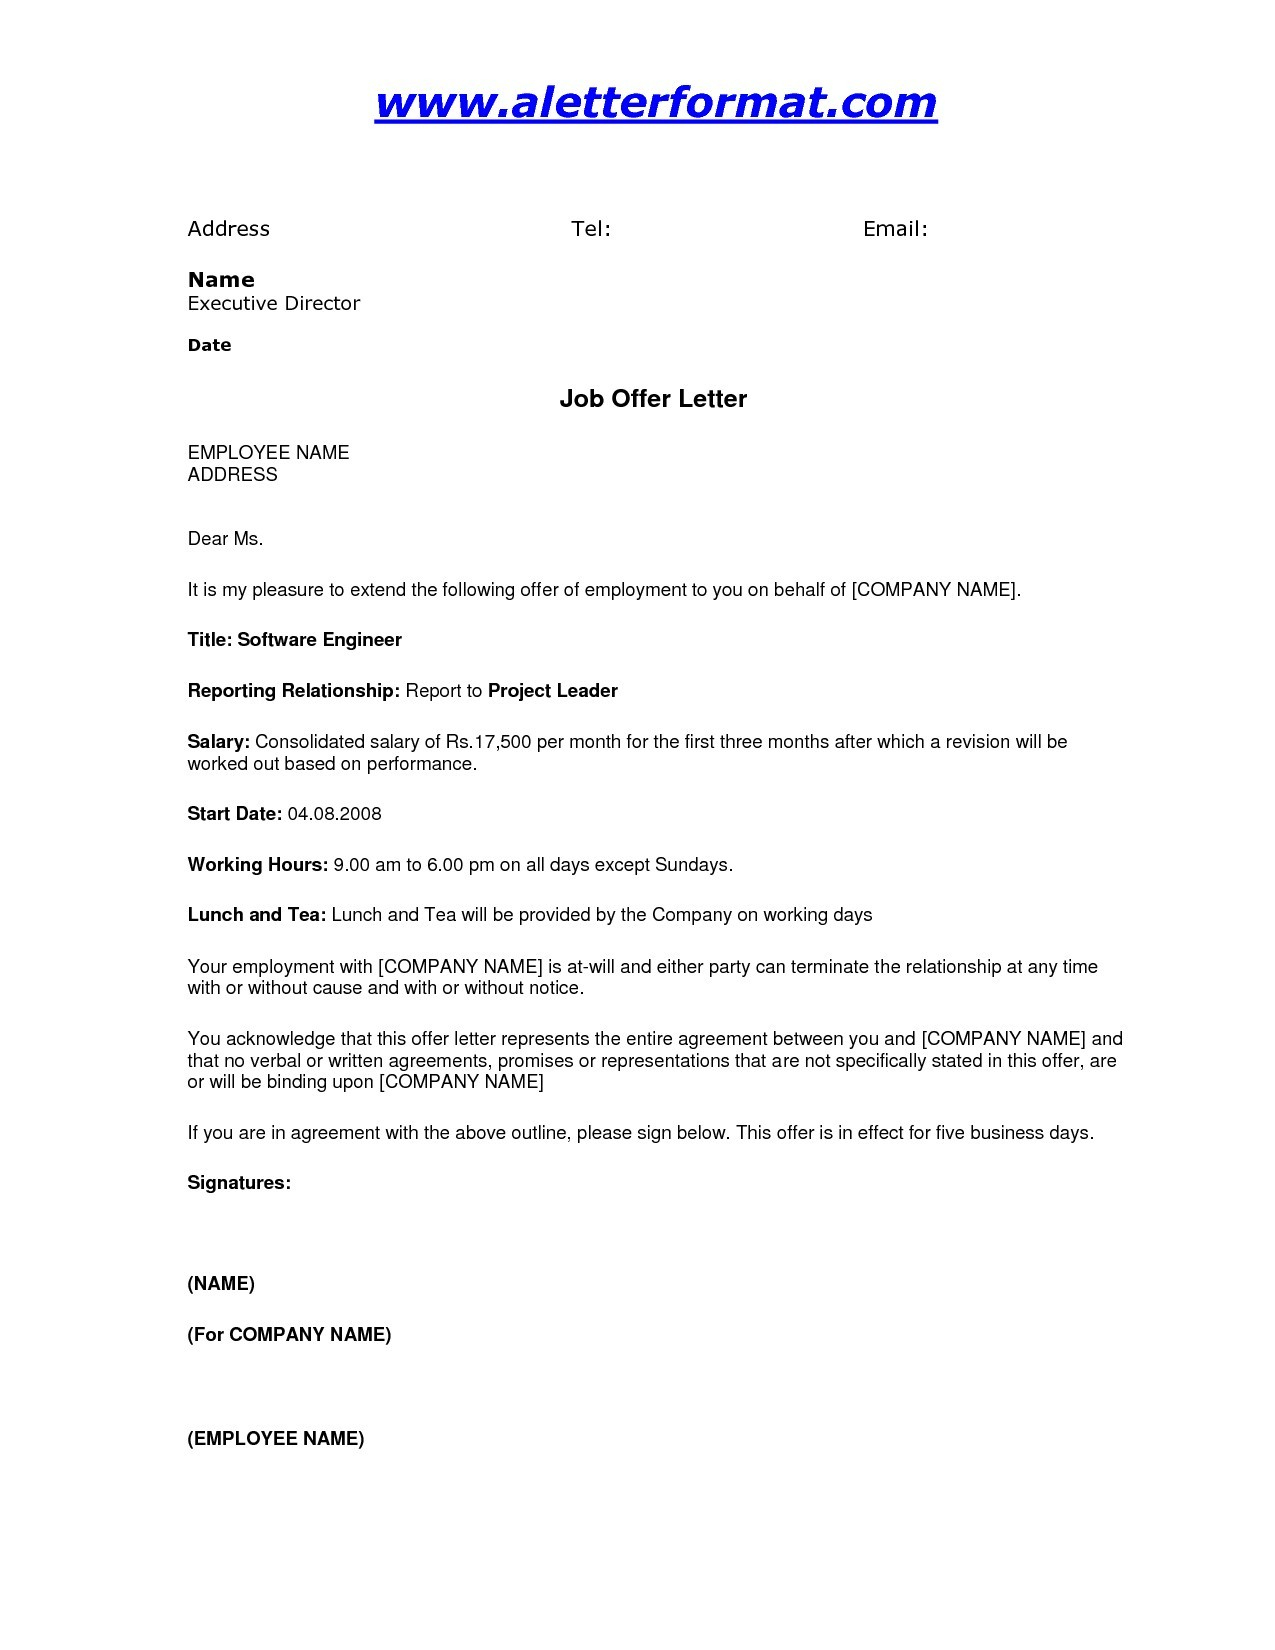 job offer letter template doc fer letter format doc it pany best event proposal template